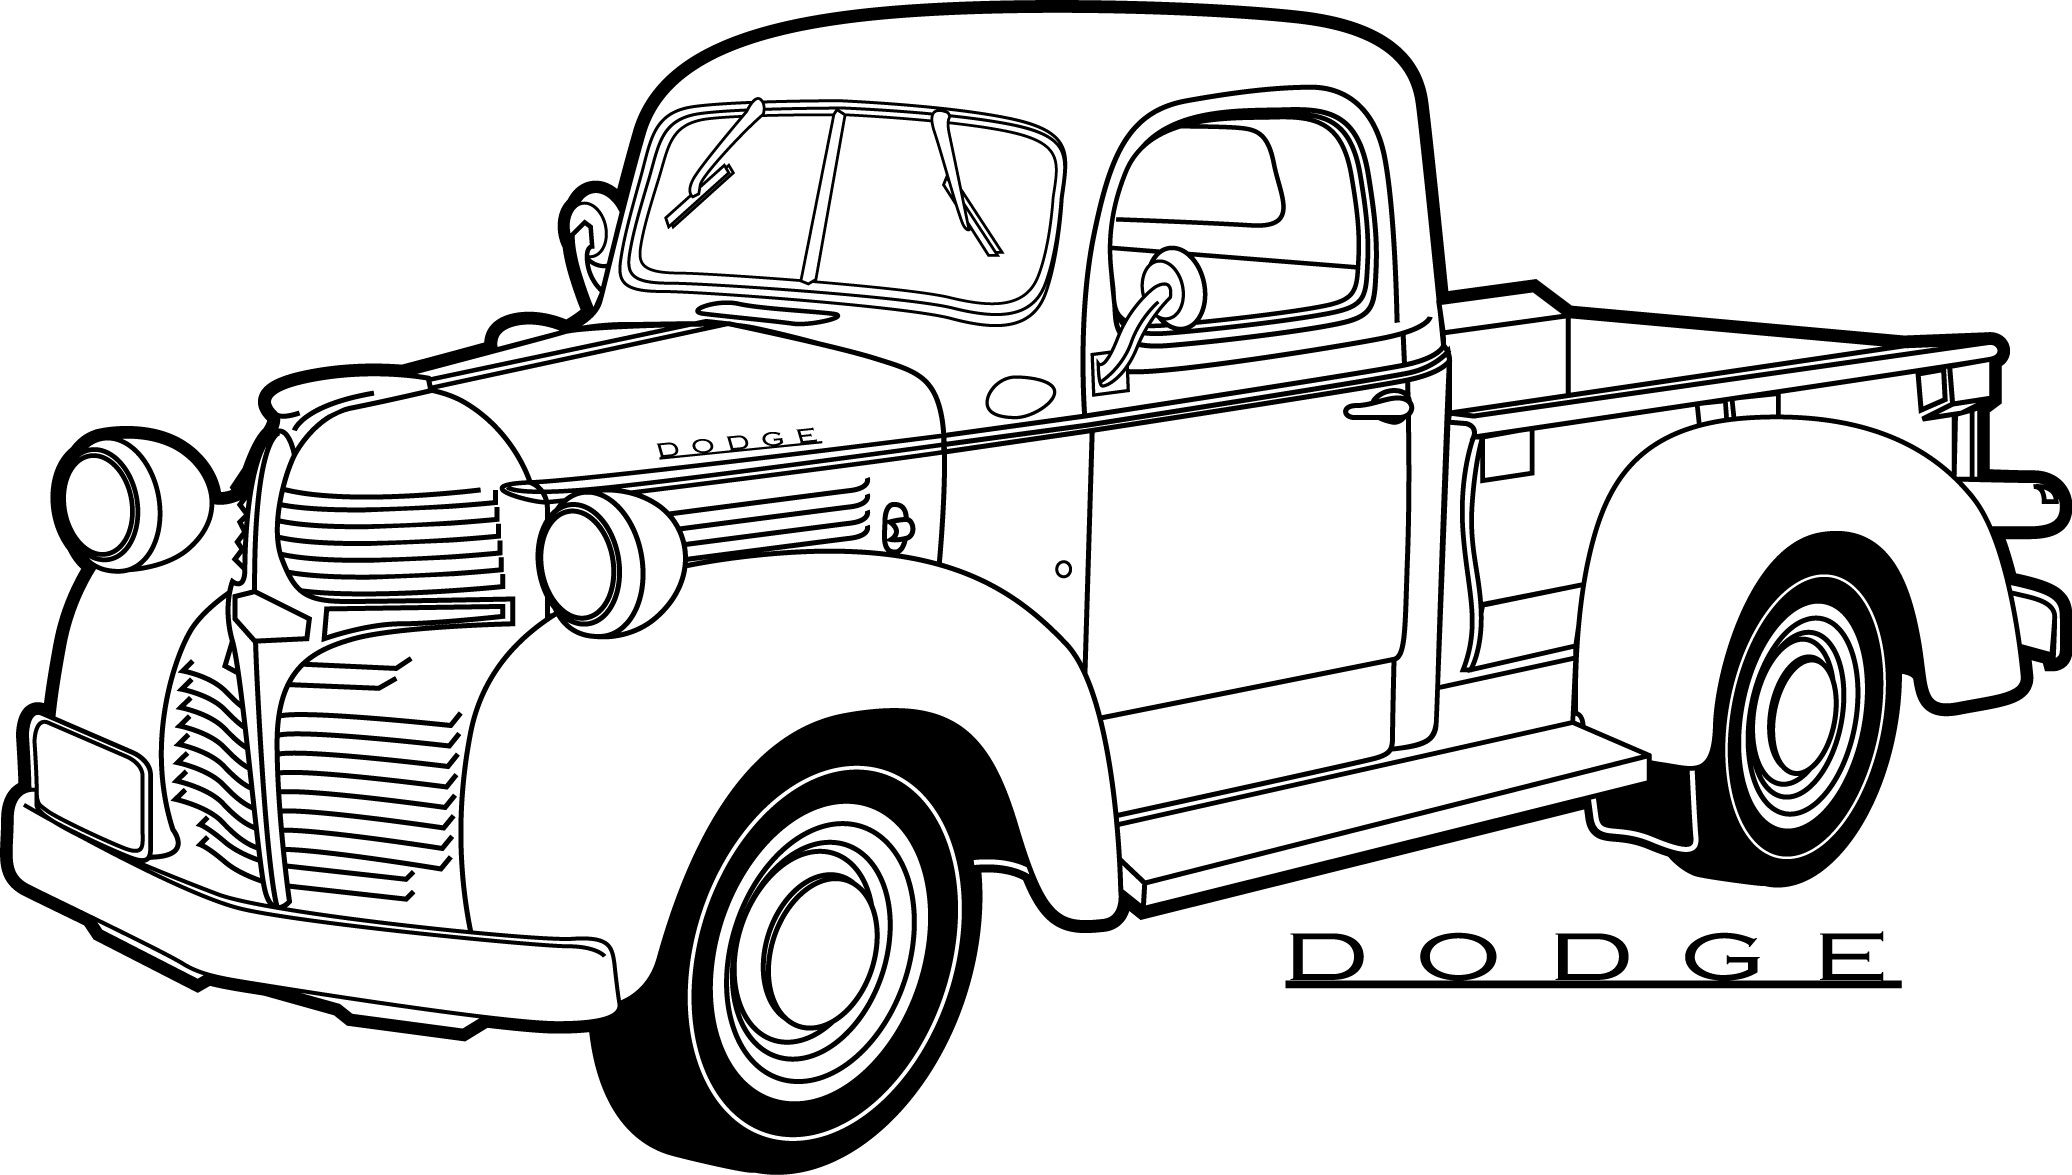 coloring pages of hot rods   Hot Rod Coloring Pages to Print Download   Free Coloring ...